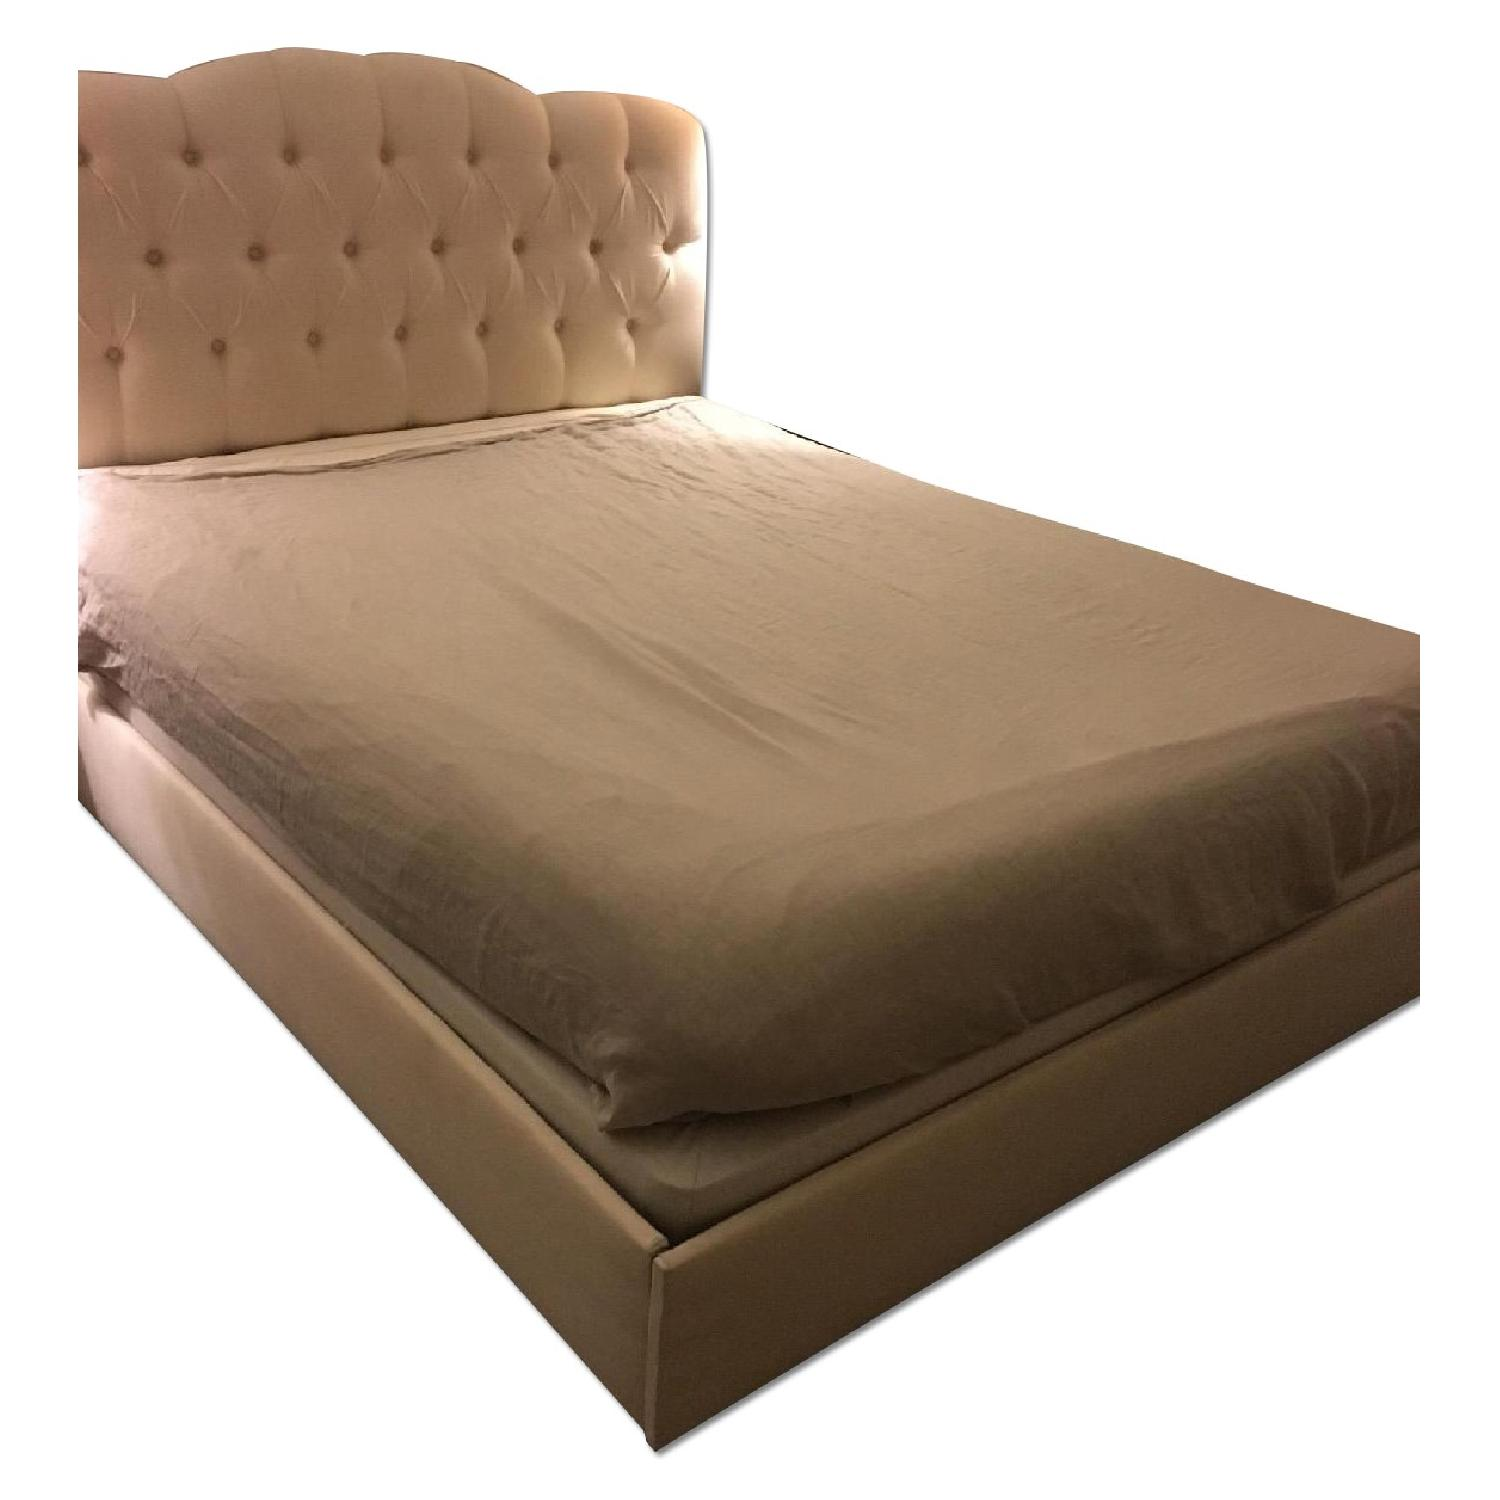 Joss & Main Queen Size Upholstered Bed Frame - image-0